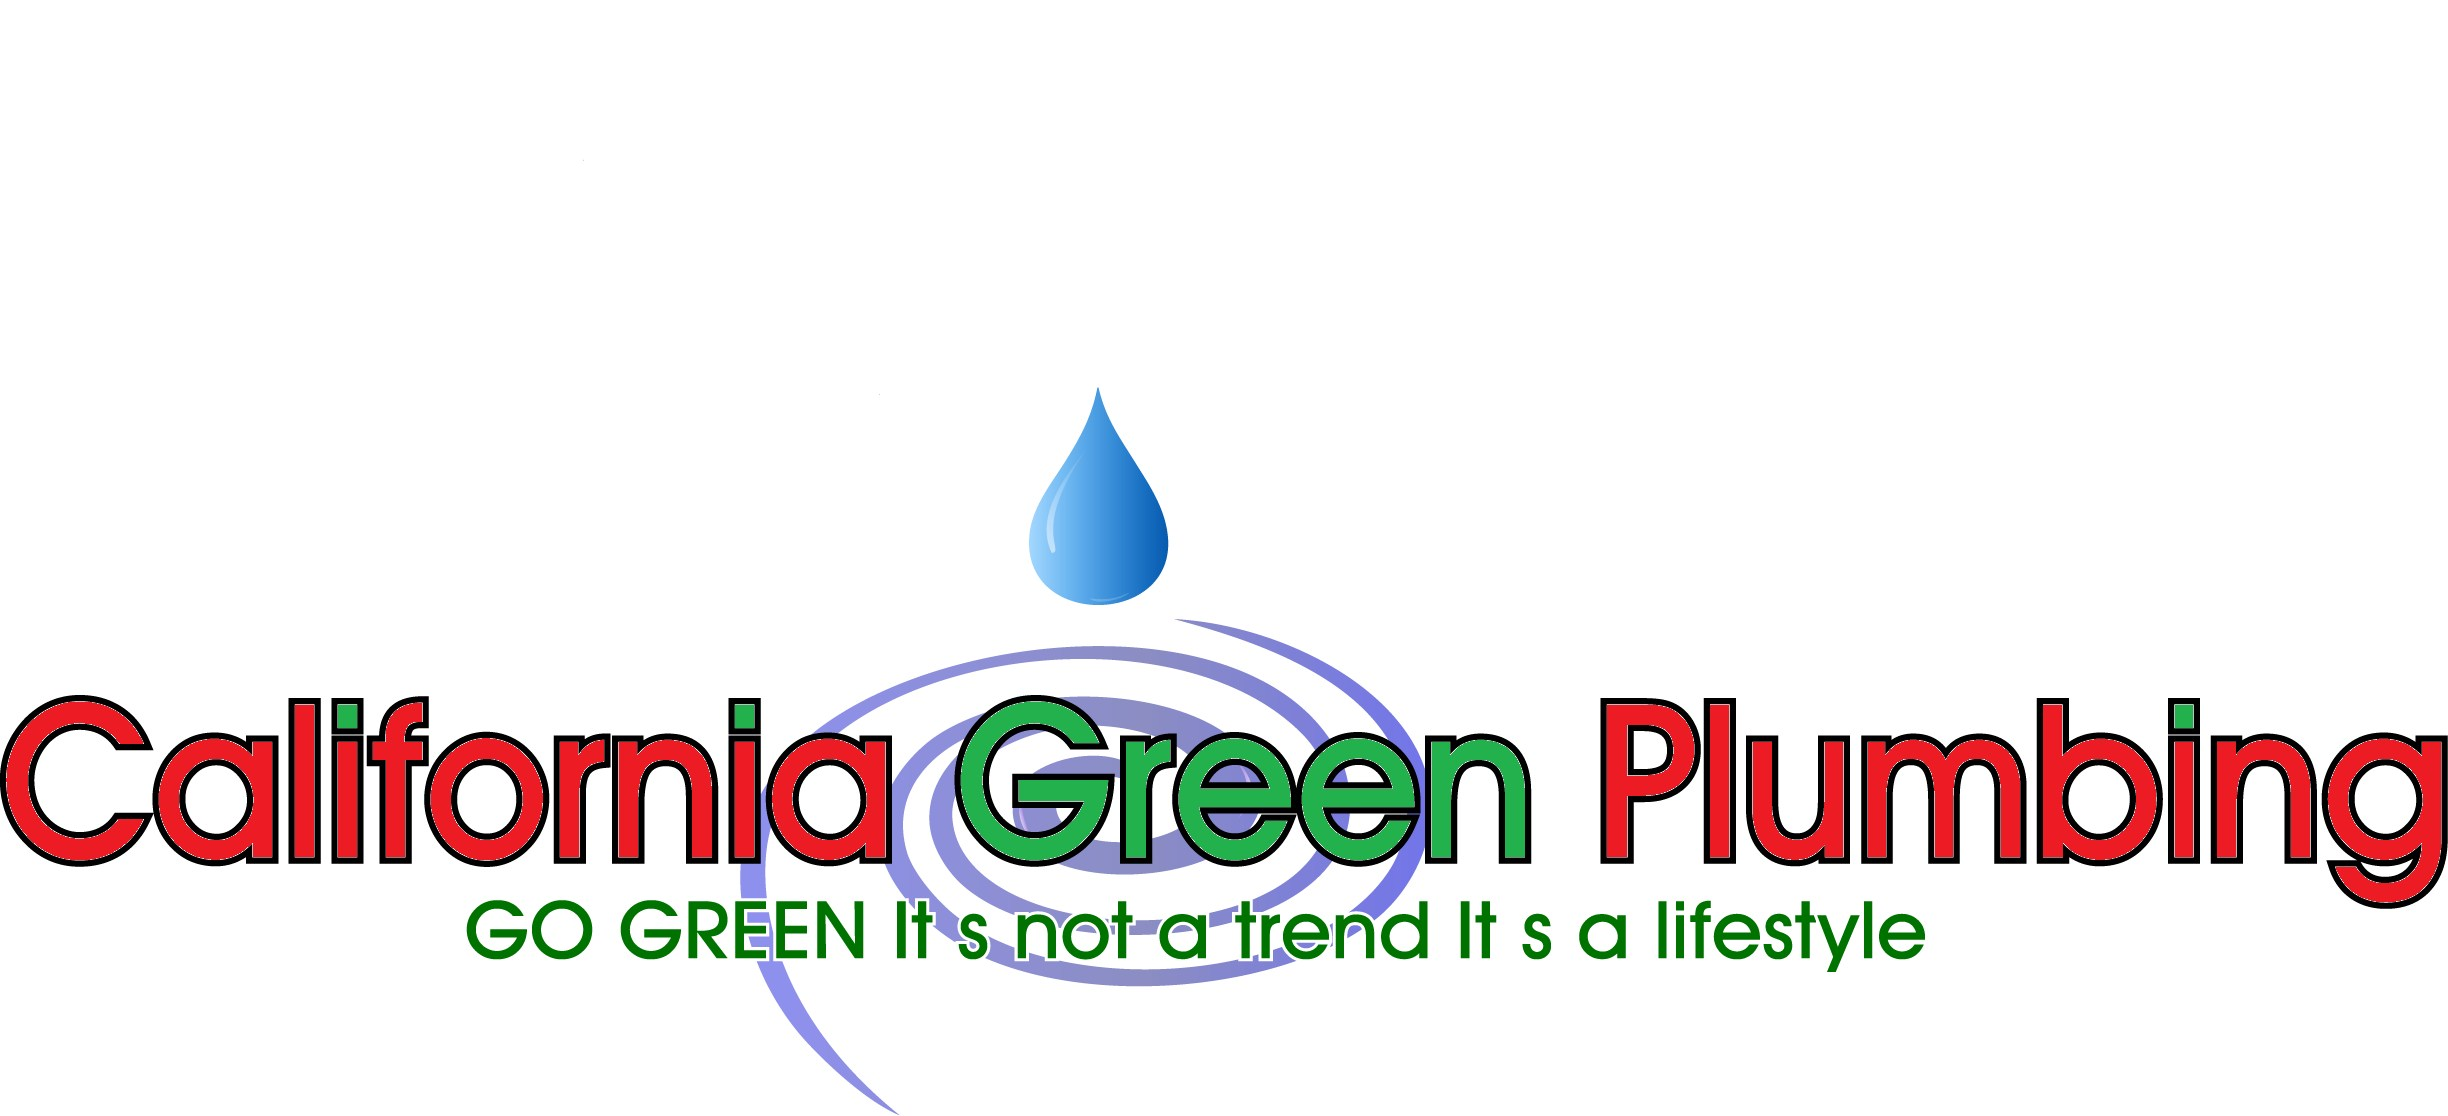 California Green Plumbing logo